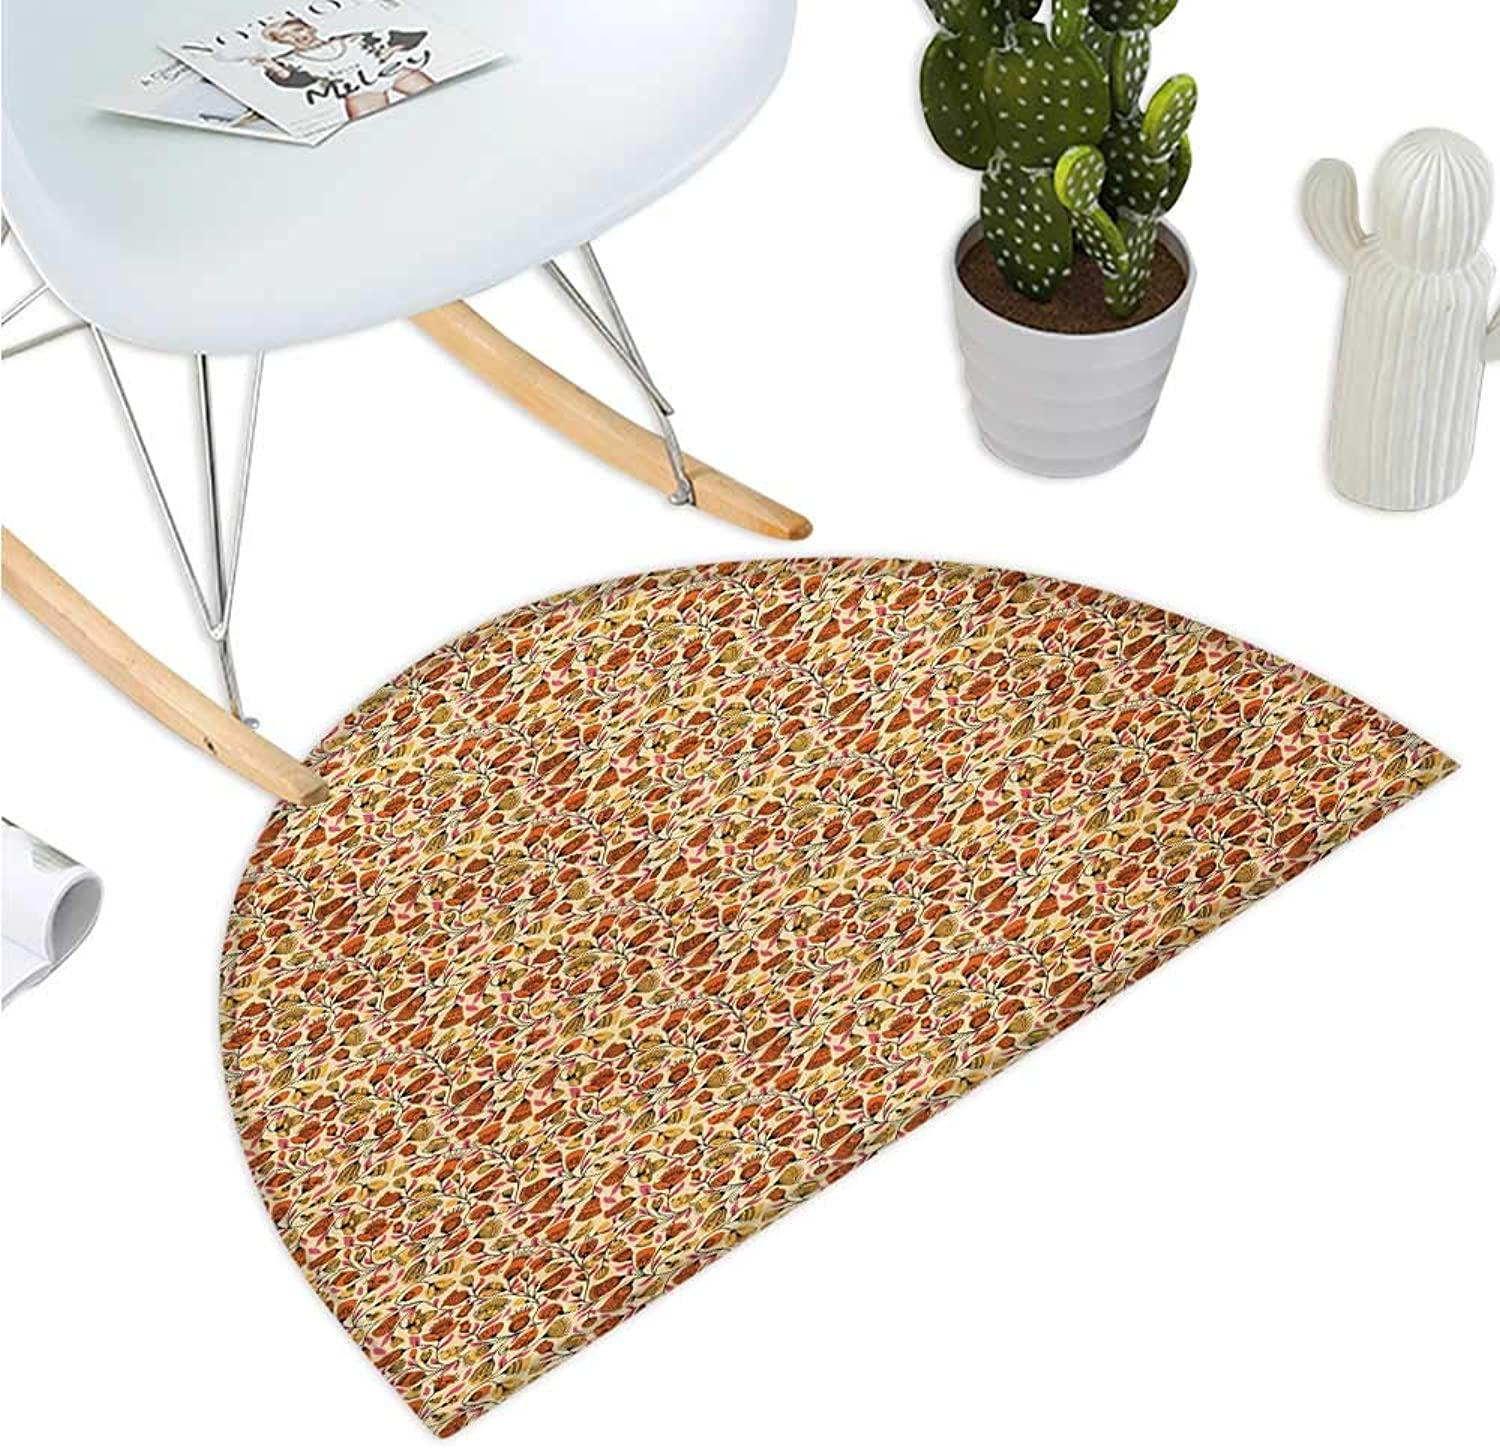 Floral Half Round Door mats Ornamental Pattern with Flowers and Birds Pink Leaves Artistic Garden Spring Nature Bathroom Mat H 35.4  xD 53.1  Multicolor